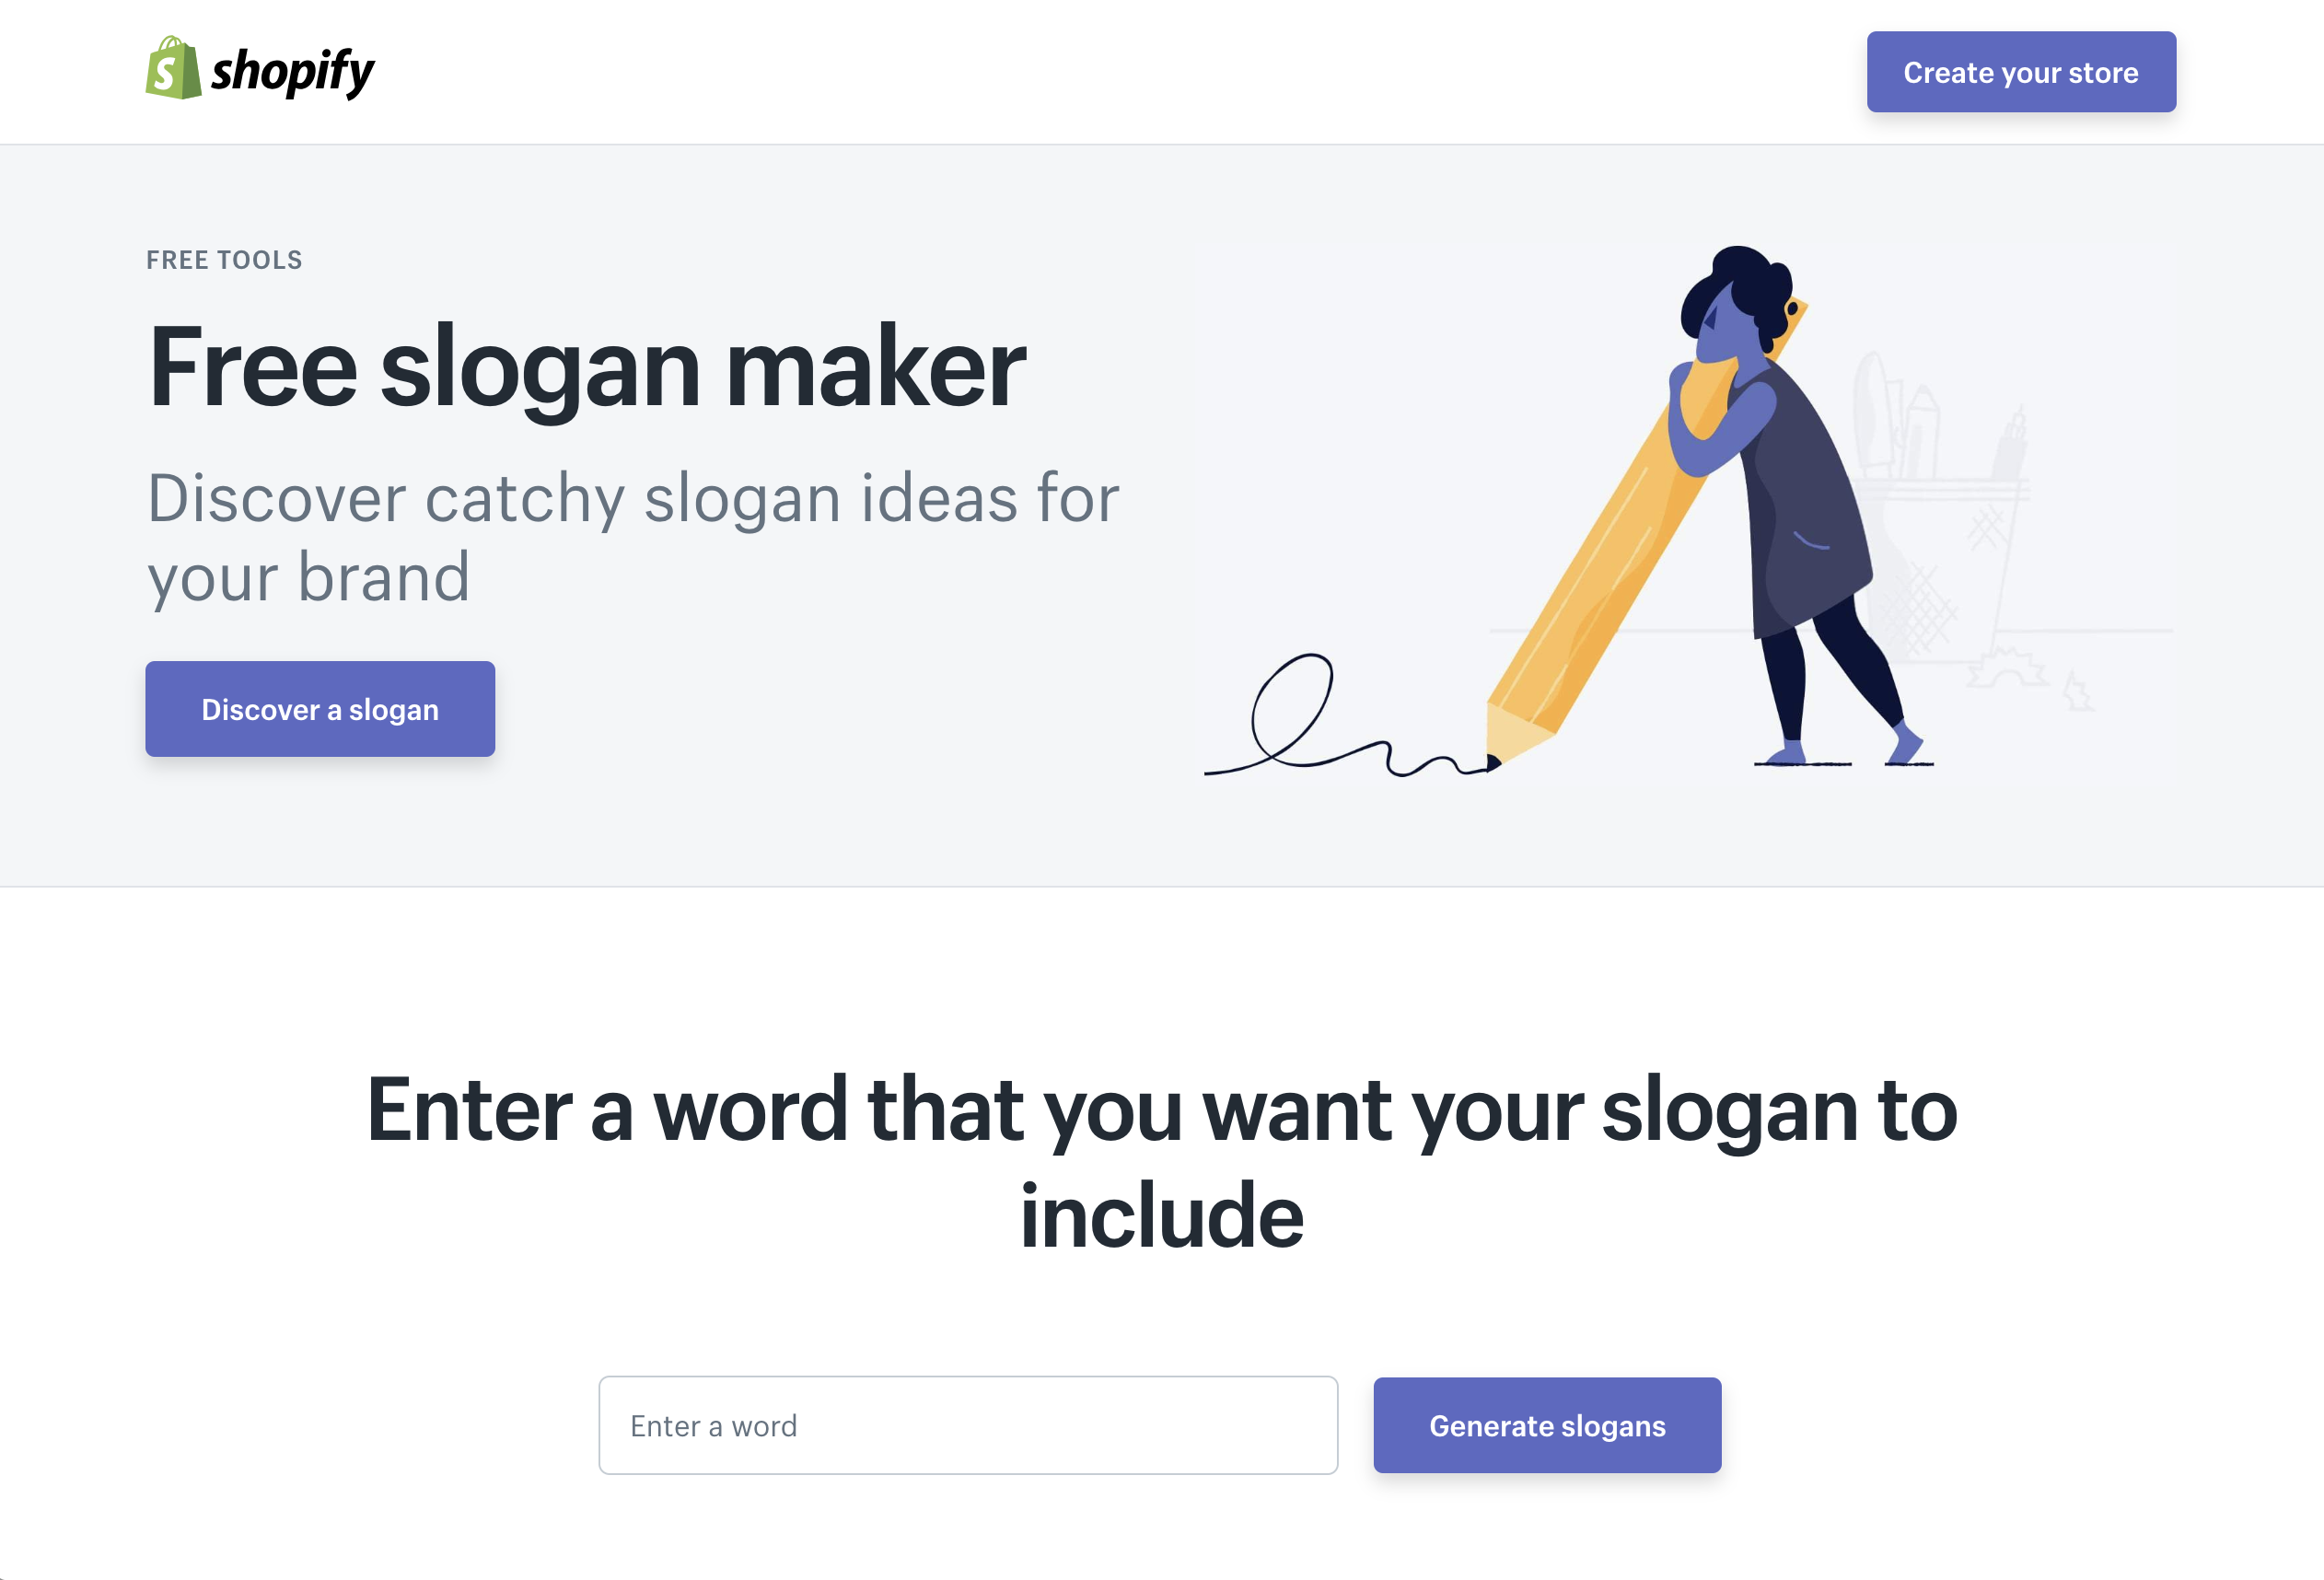 Free Tools - Shopify's Free Slogan Maker